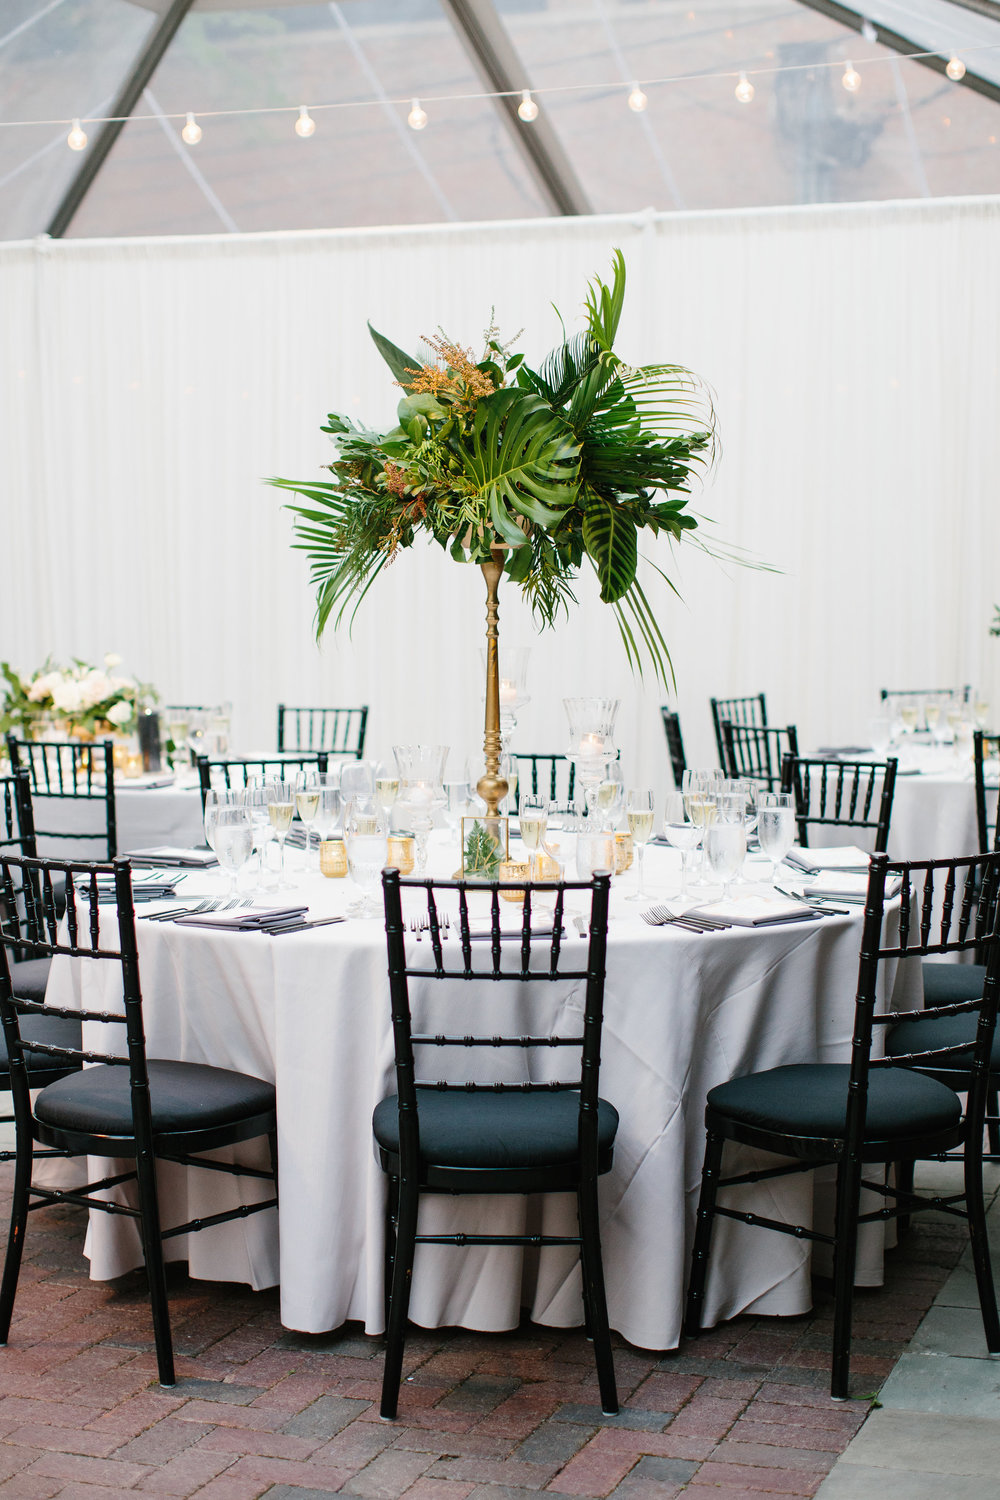 Wedding flowers by Fleur Inc at Chicago Illuminating Company.  Planning by LK Events, Images by Katie Kett Photography. Tropical Centerpieces.